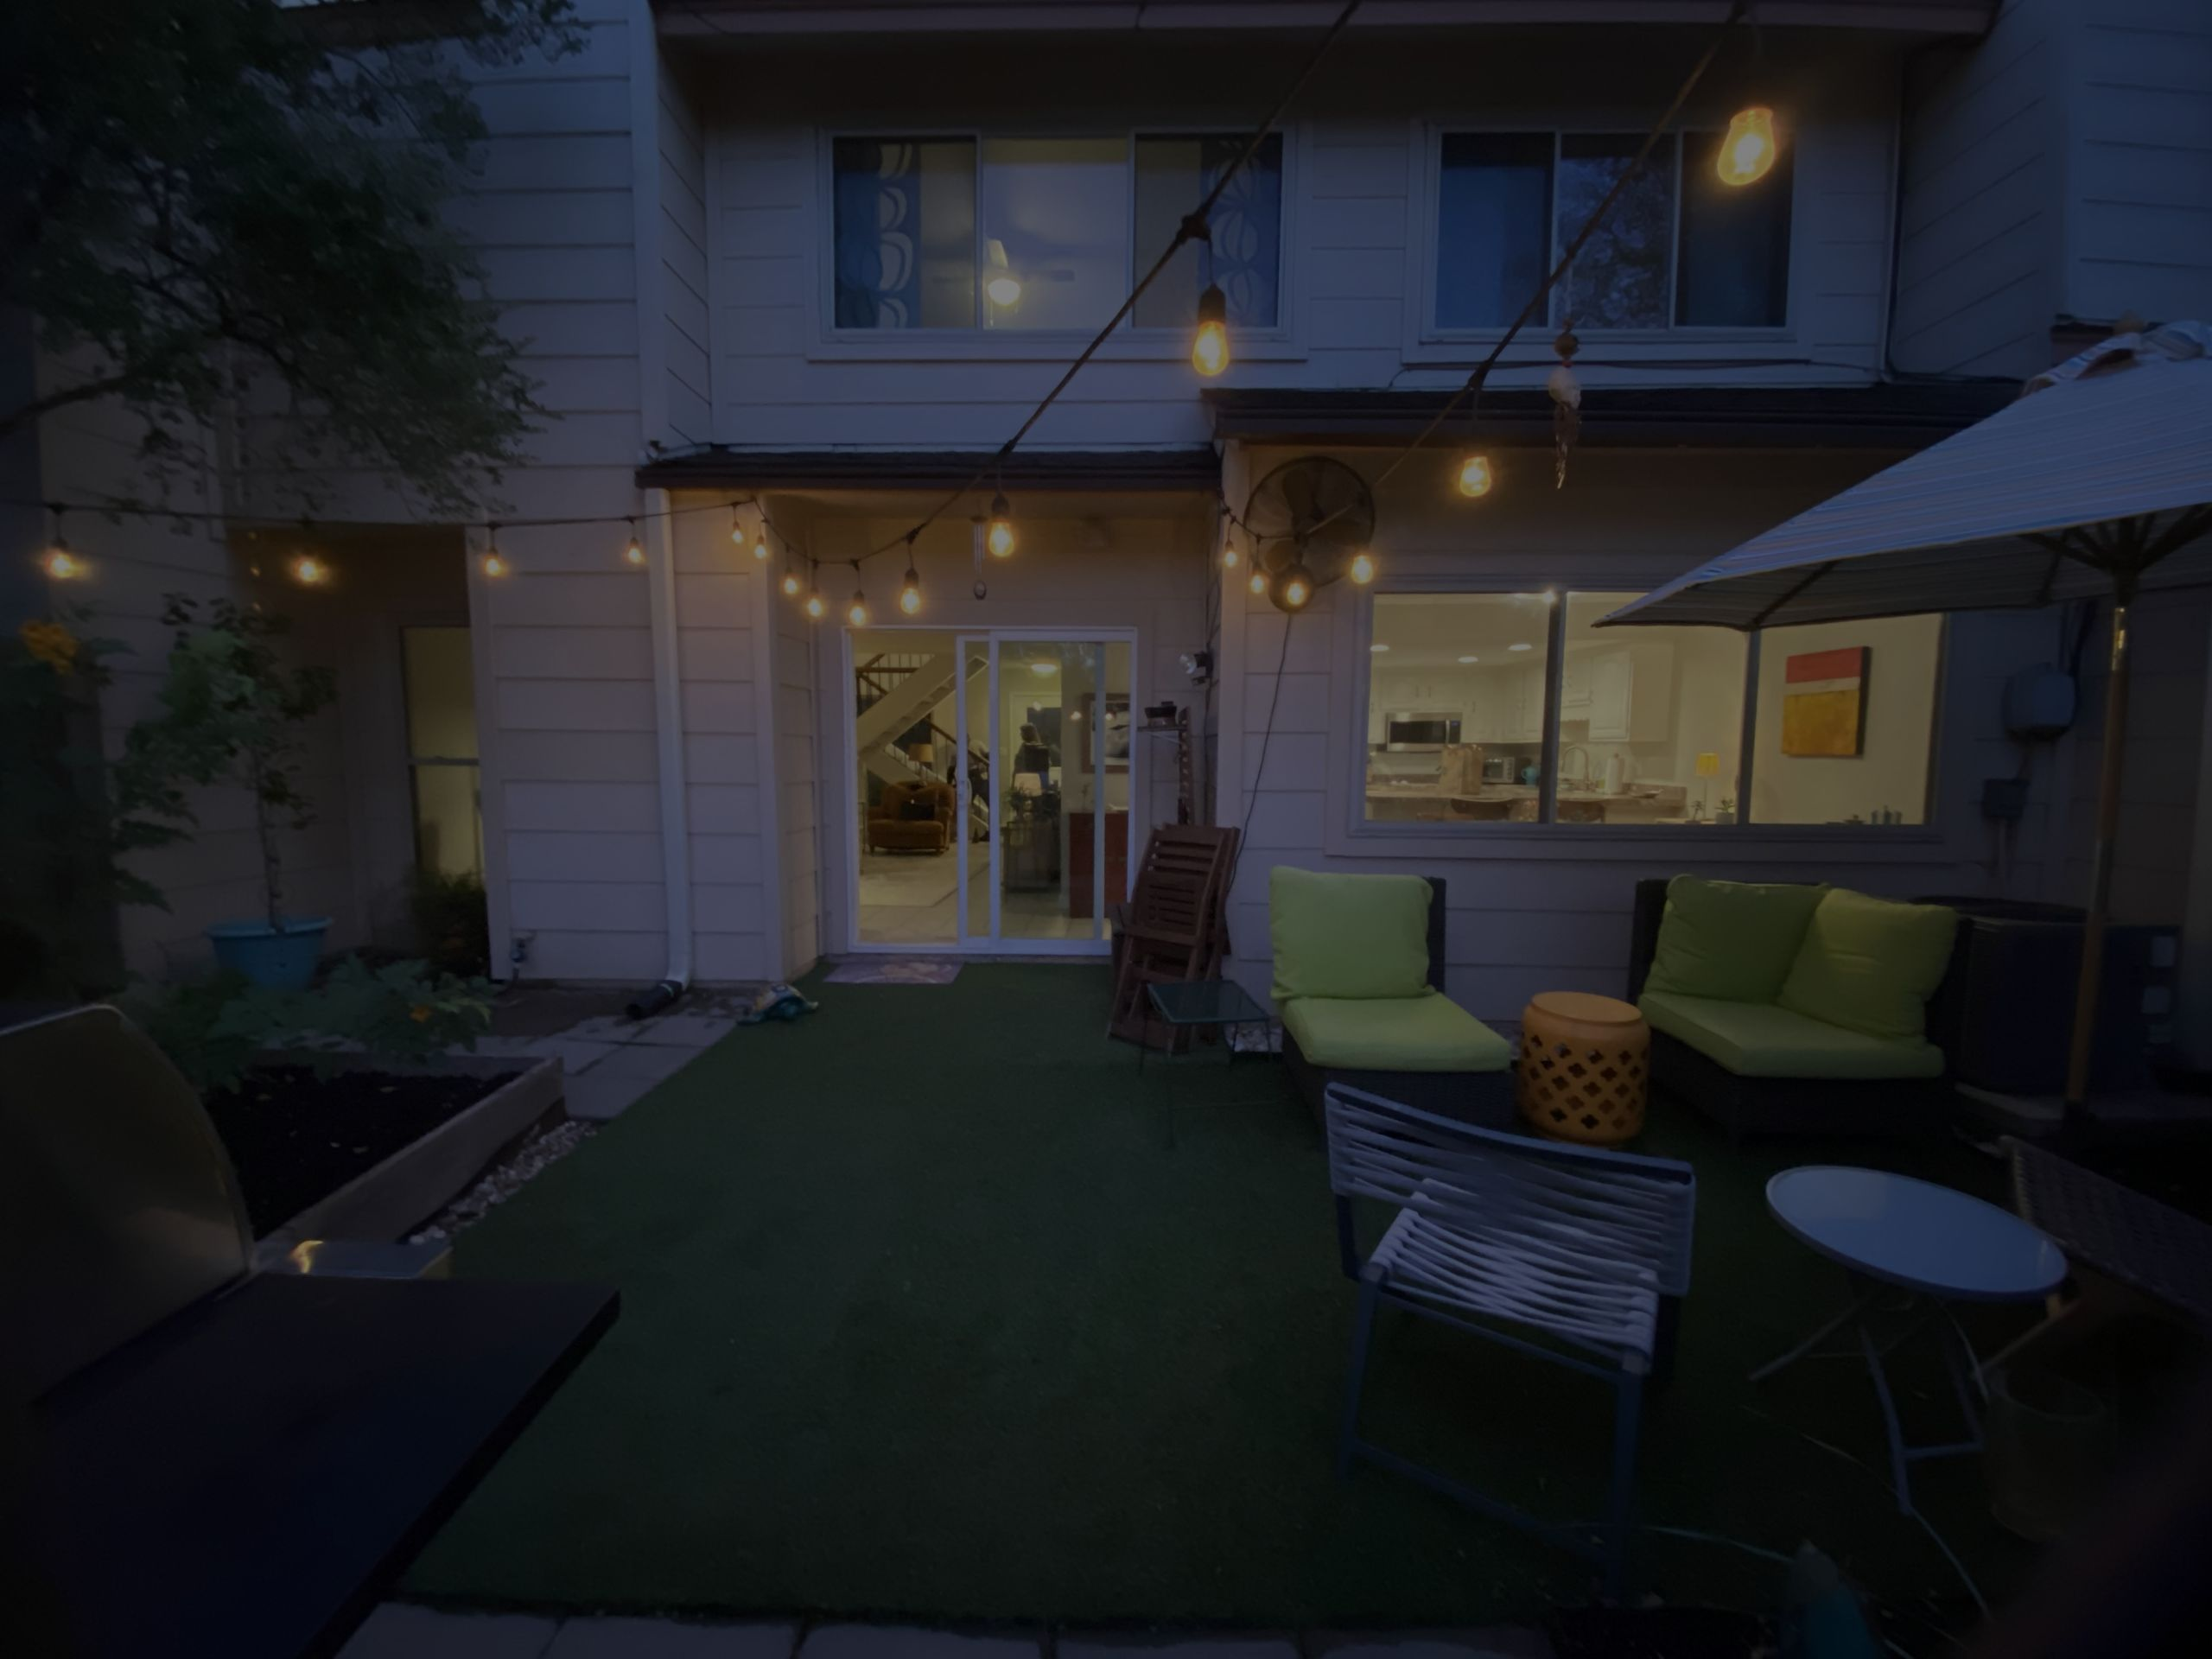 Great front and rear exterior astroturfed living areas